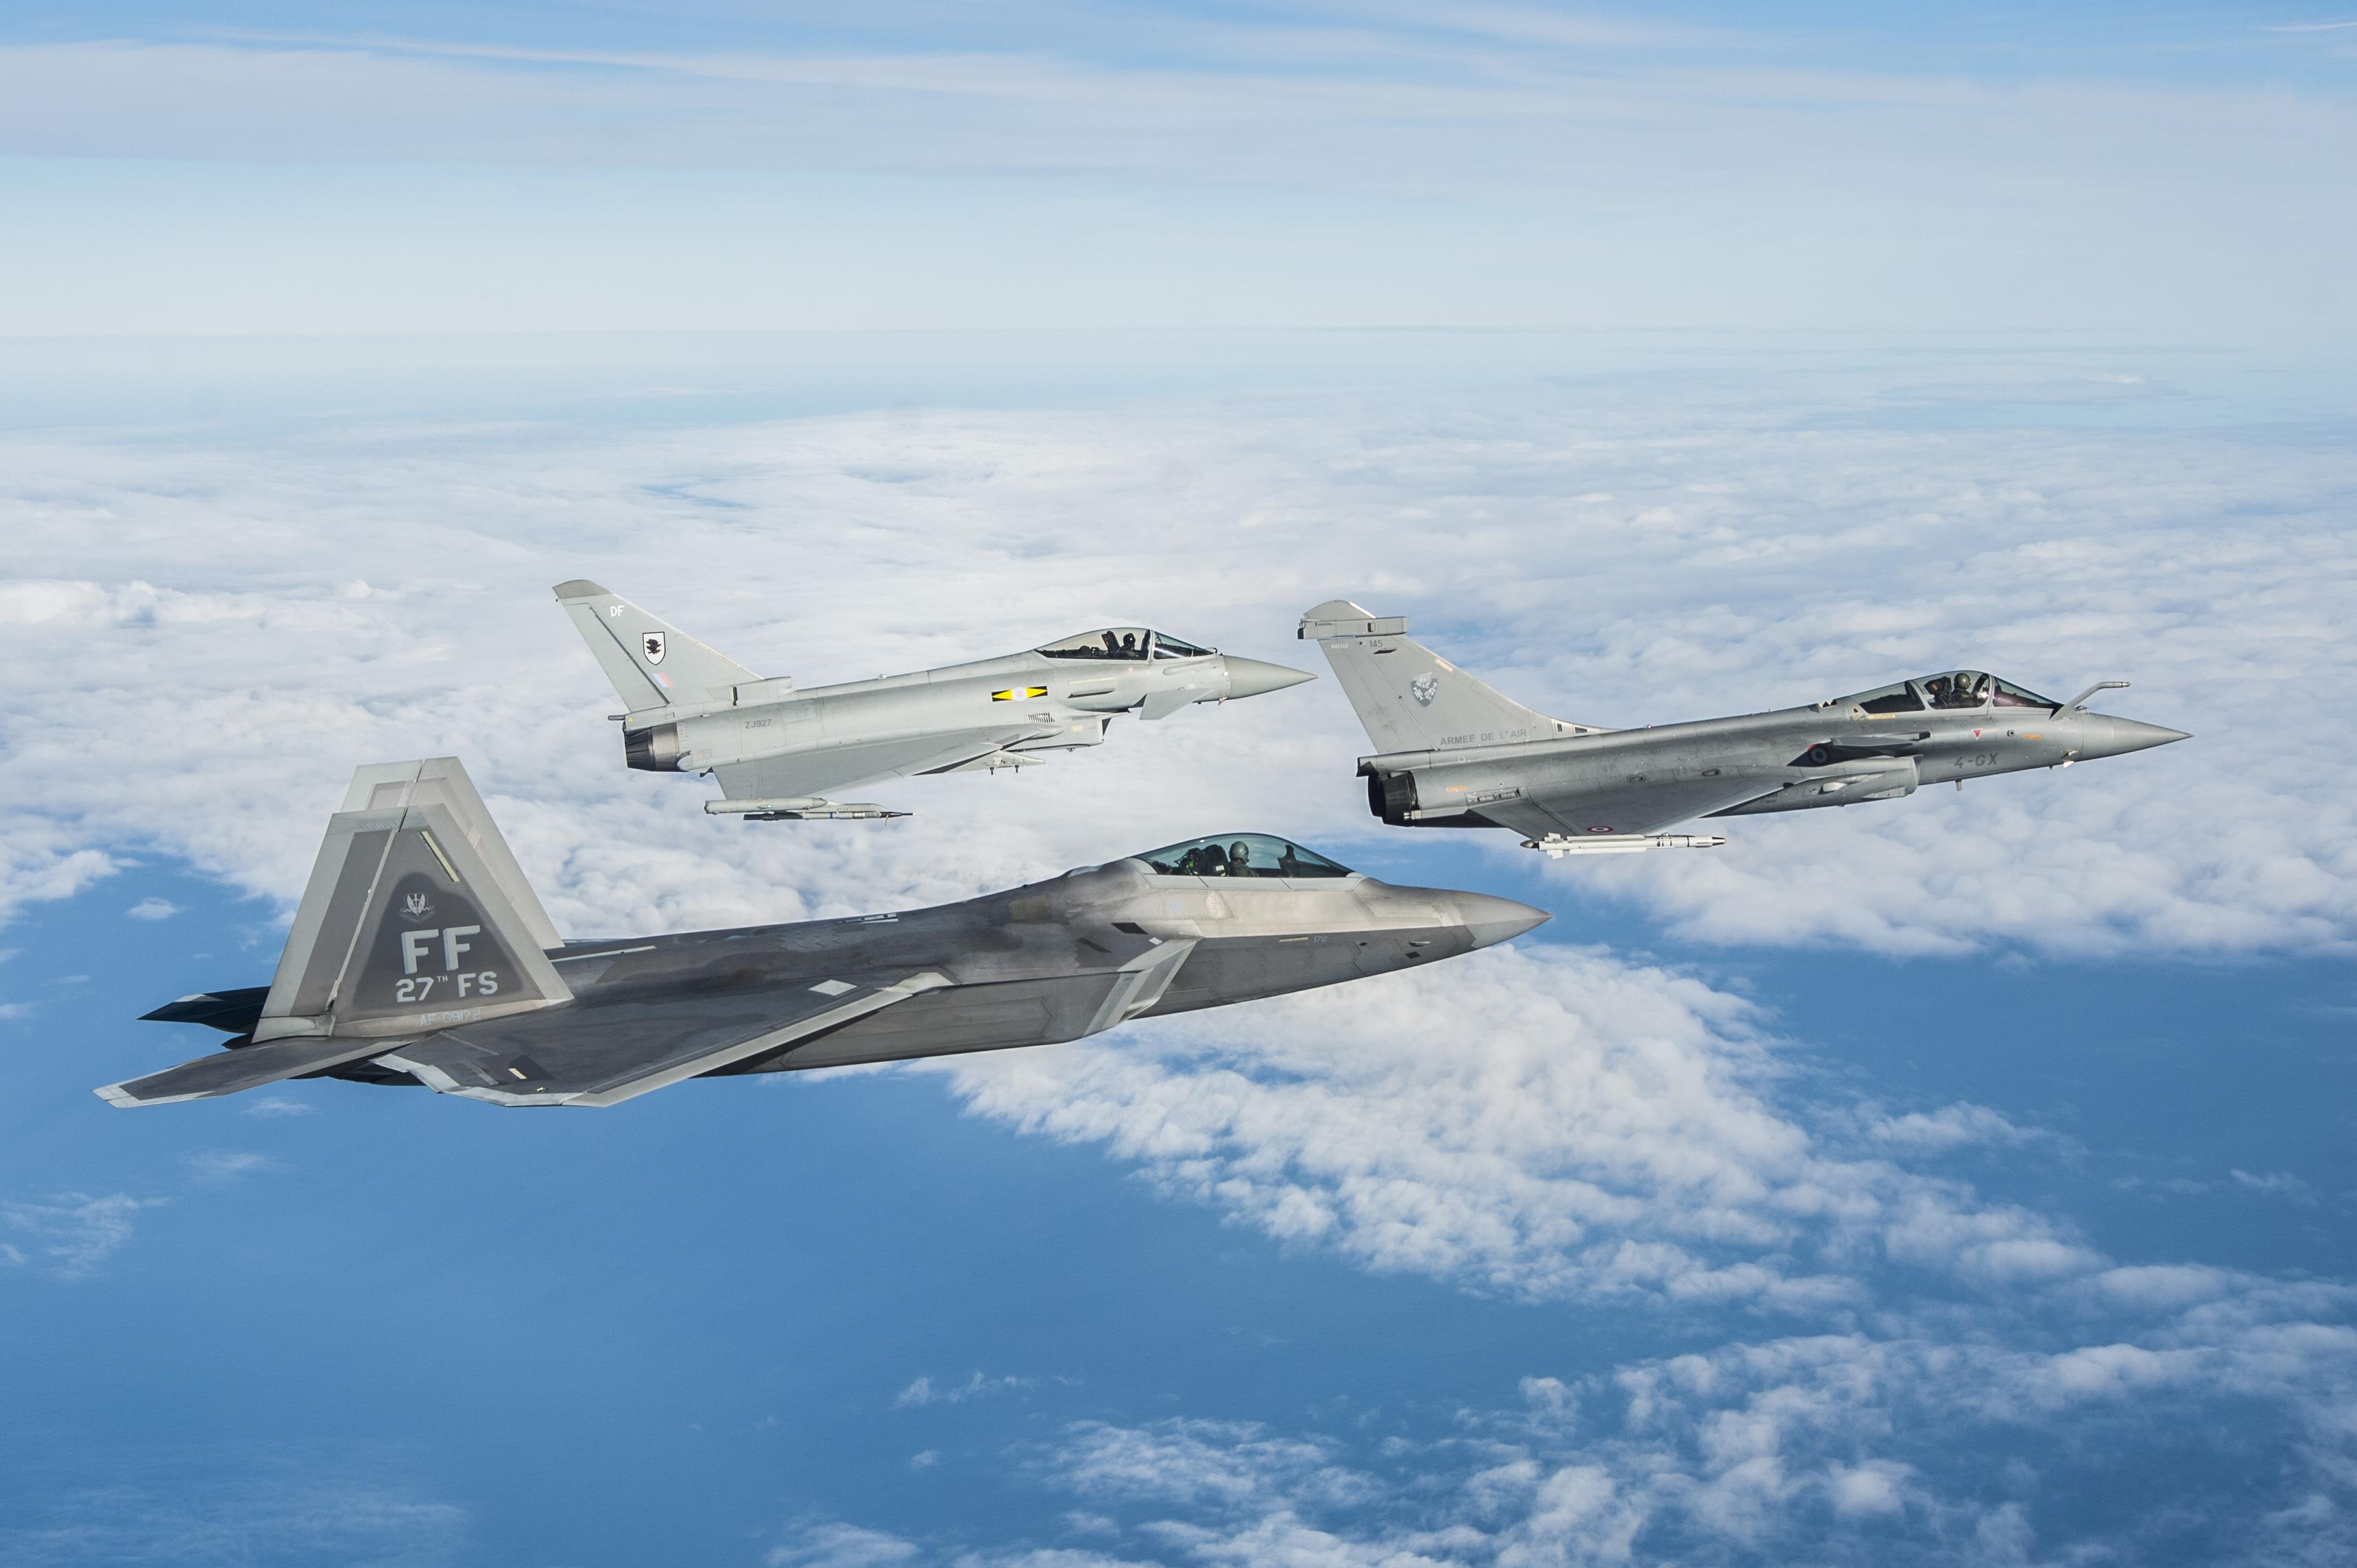 File:F-22 Raptor, Eurofighter Typhoon and Dassault Rafale ...